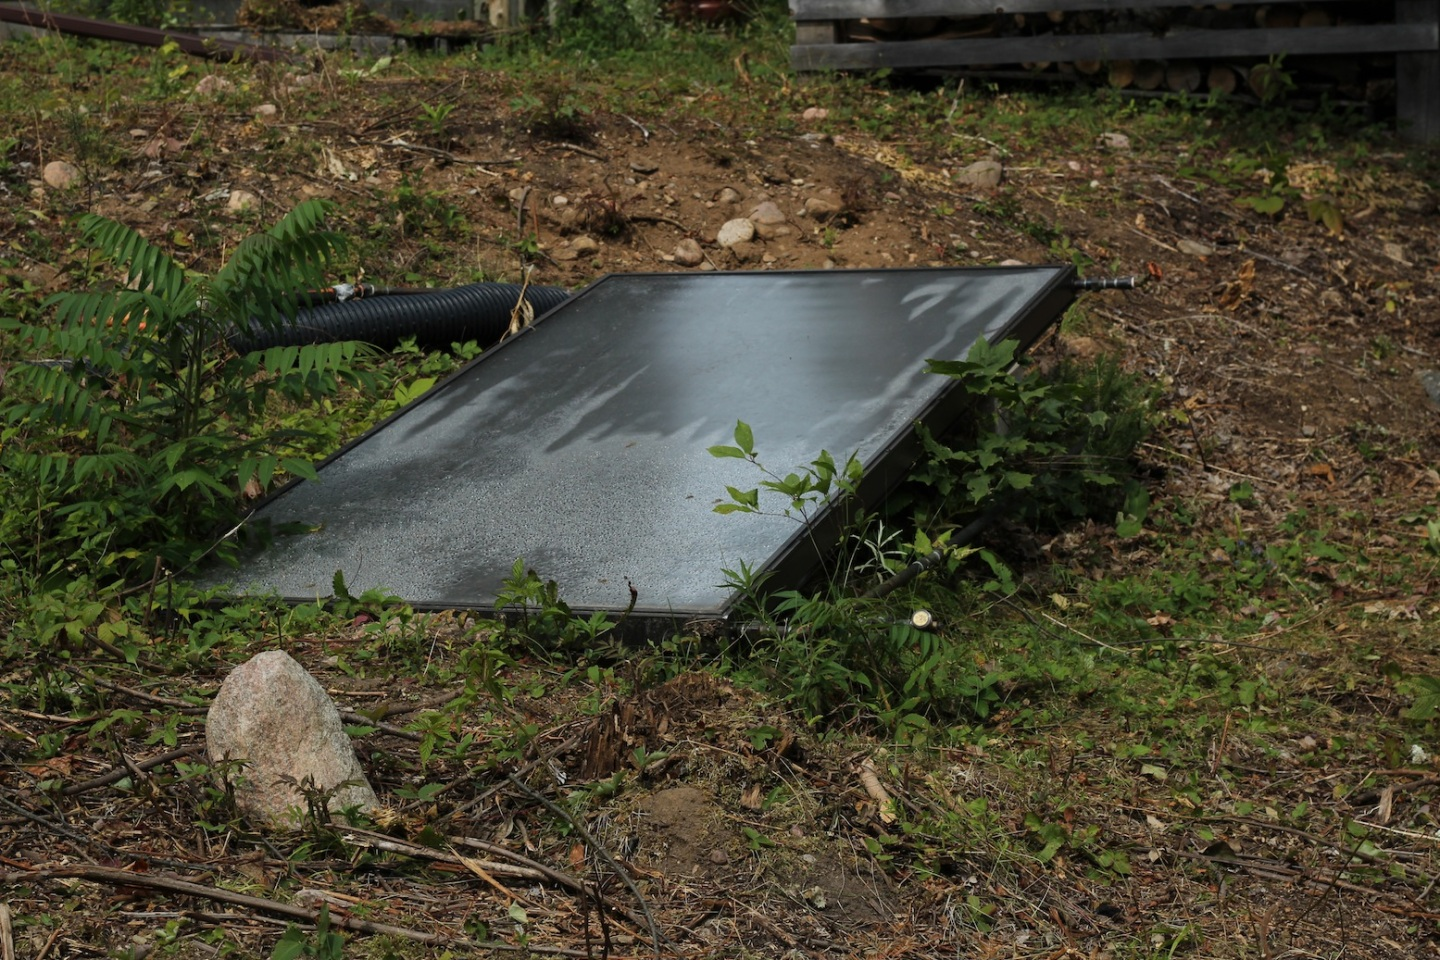 The old passive solar panel lying on the ground.